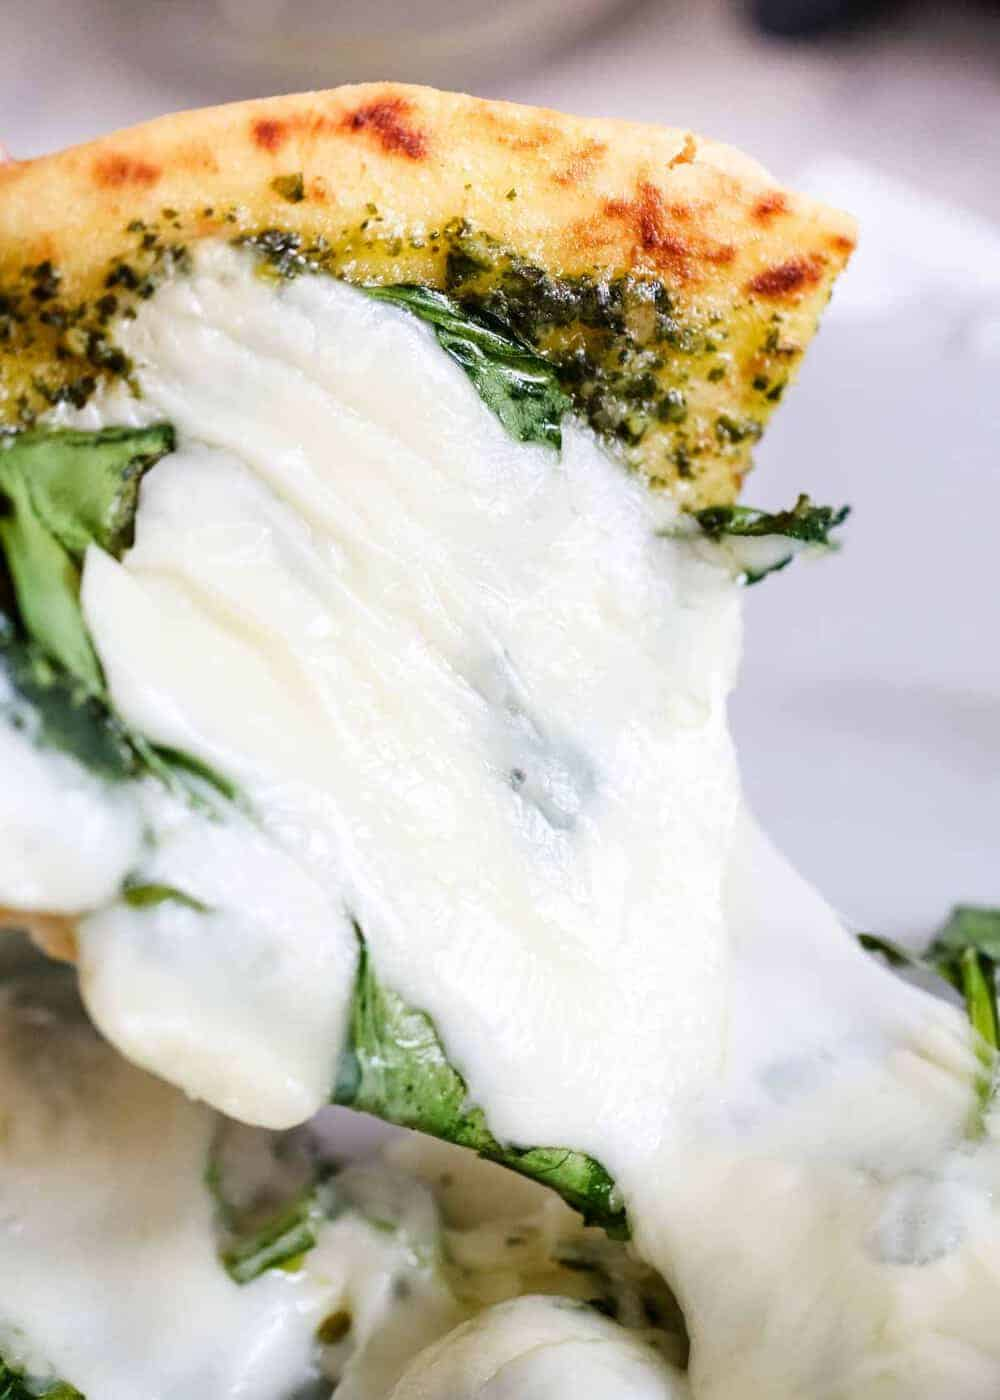 slice of pesto pizza with melted cheese